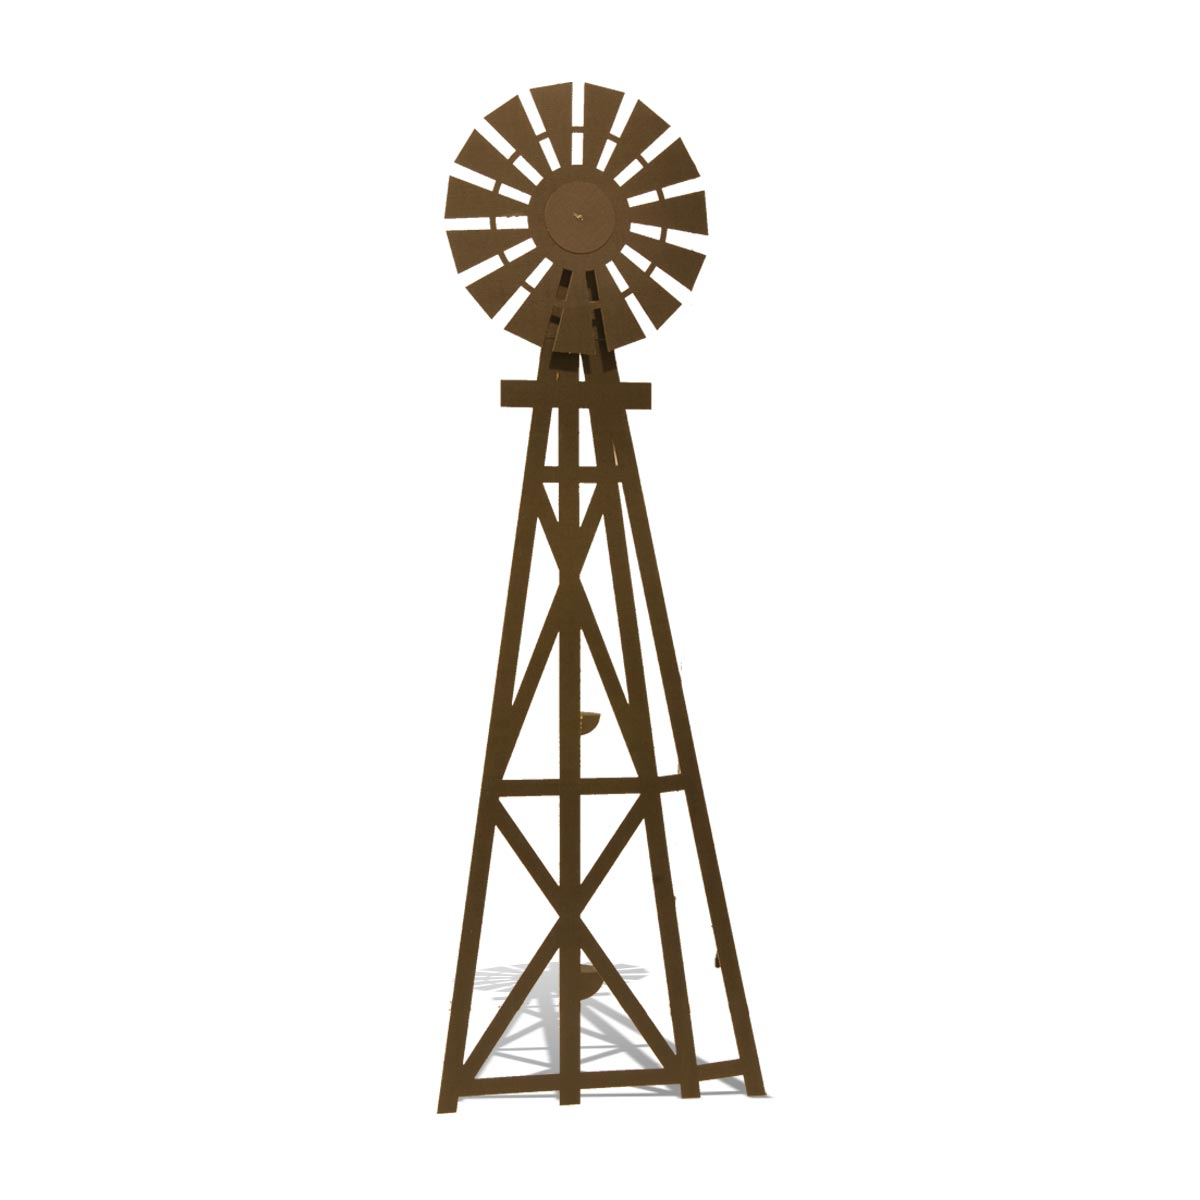 Way Out West Windmill Silhouette Kit